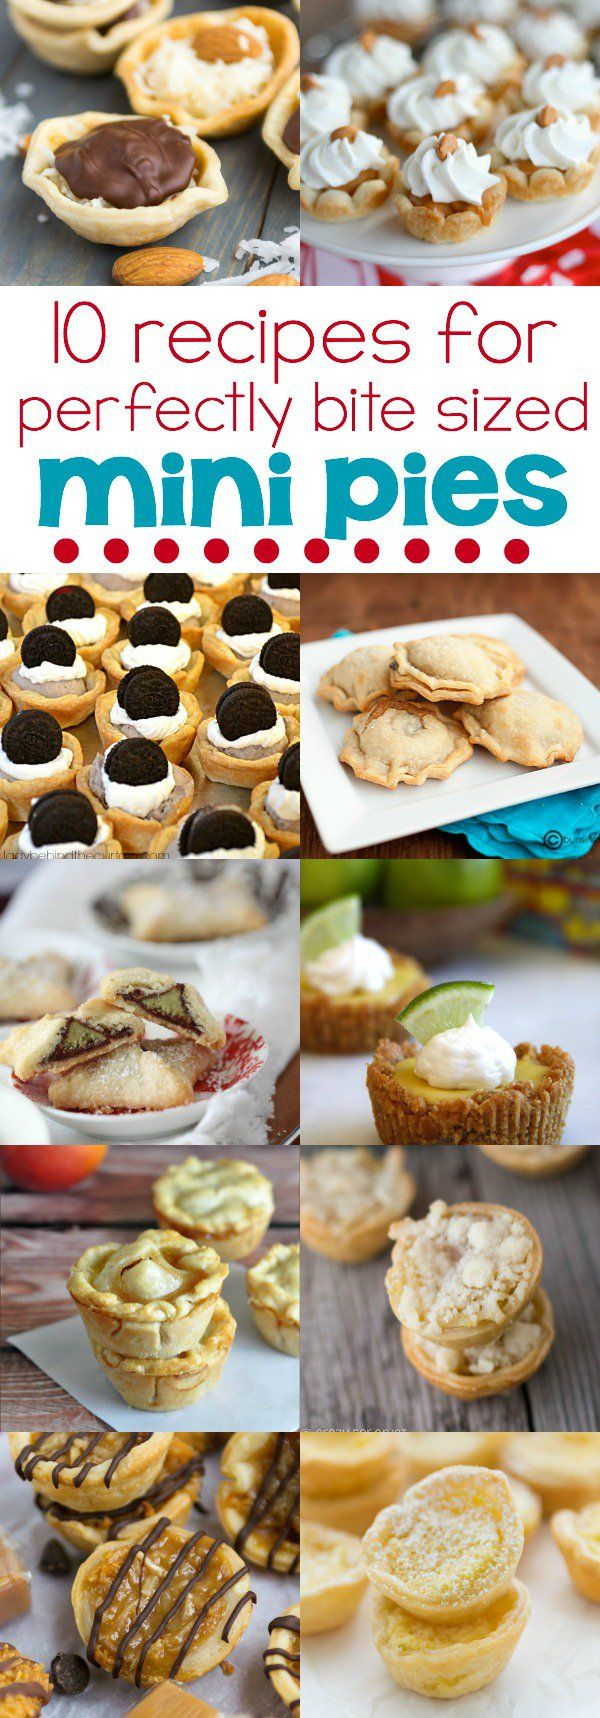 10 recipes for perfectly bite sized mini pies http://communitytable.parade.com/374849/dorothykern/10-bite-sized-pie-recipes/